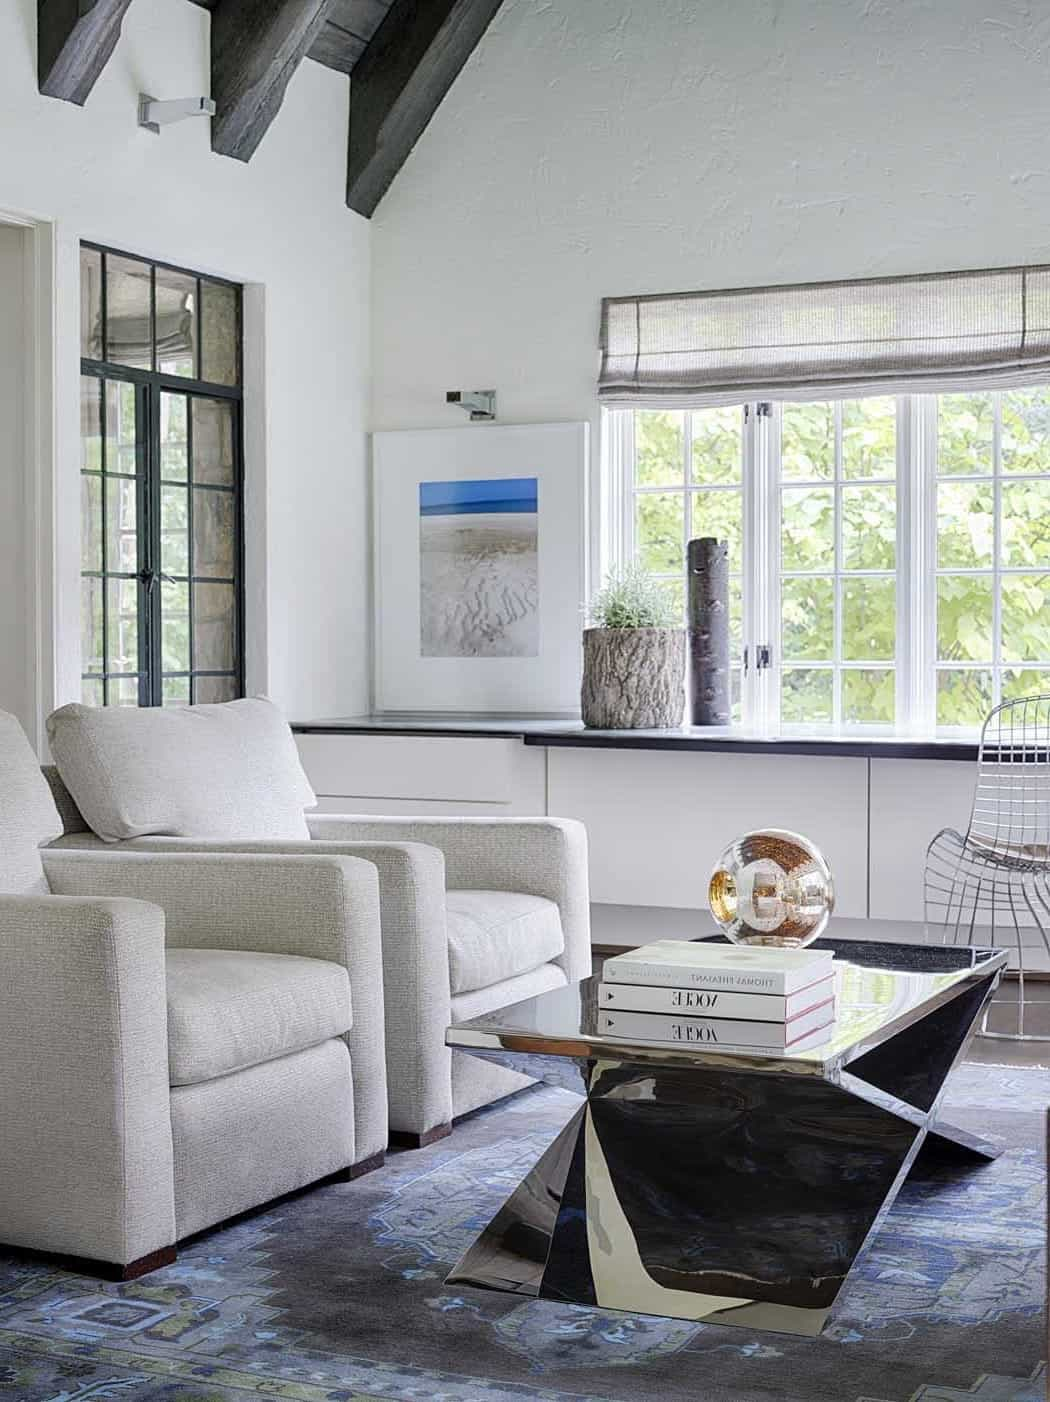 Bright Sunroom With Reflective Coffee Table (Image 7 of 32)